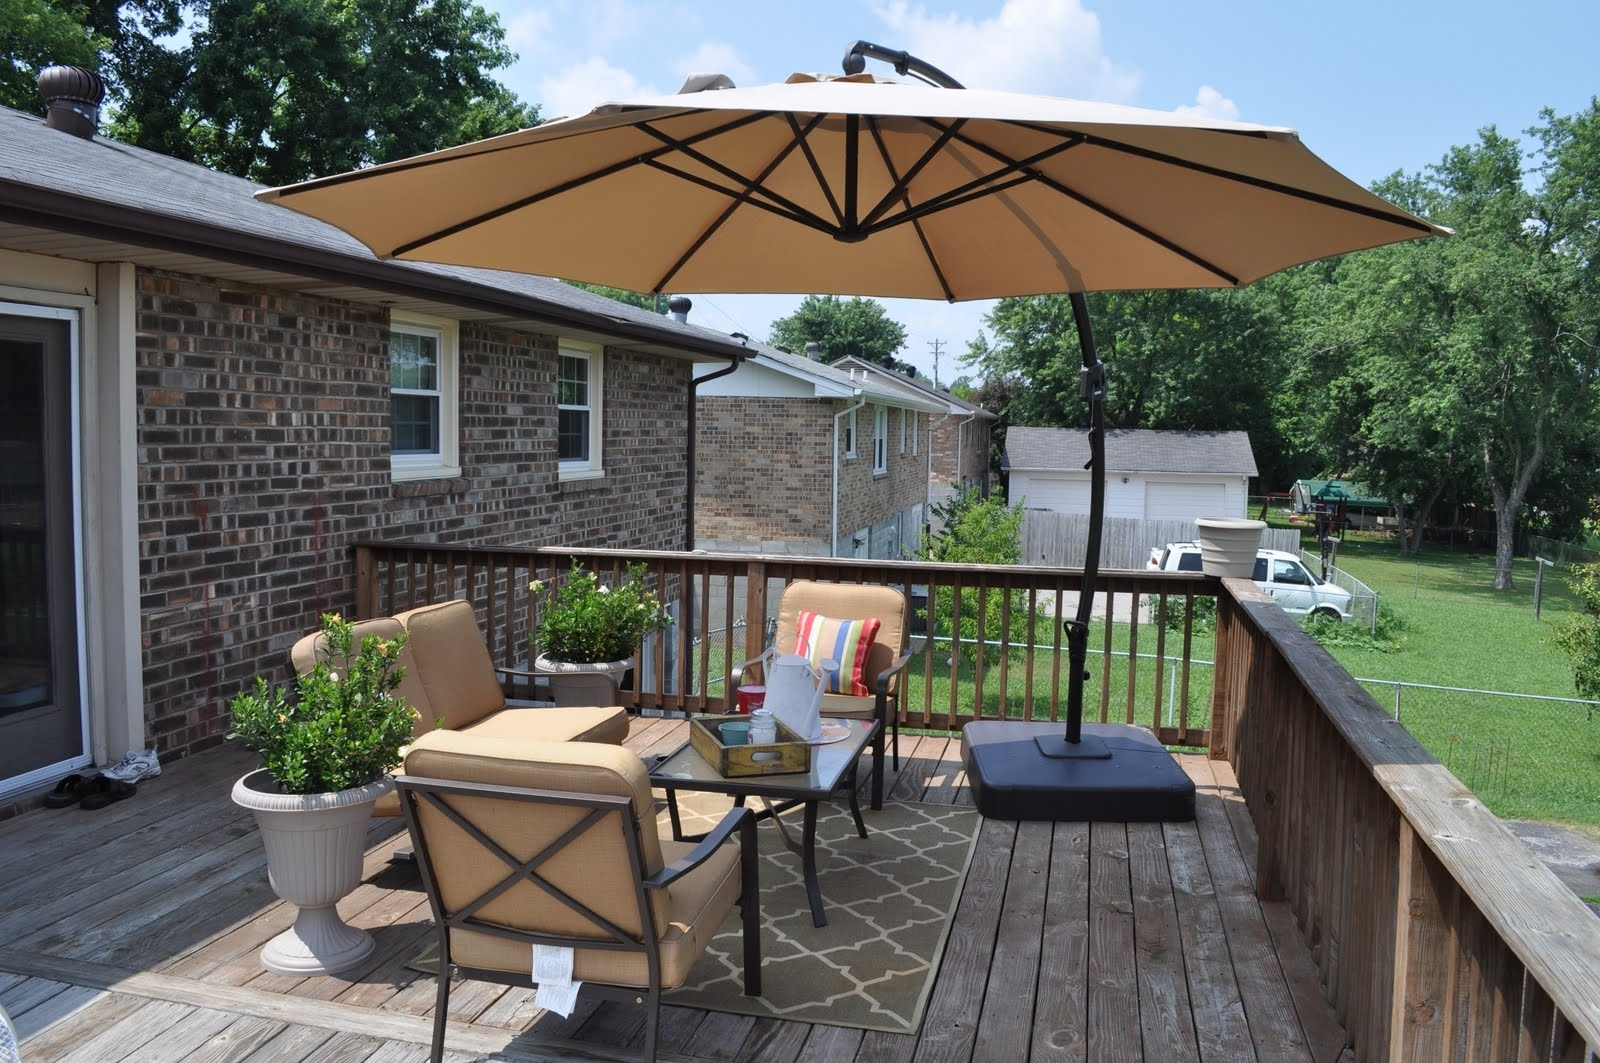 Latest Decorating Patio Furniture With Umbrella — Life On The Move Intended For Patio Deck Umbrellas (View 5 of 20)